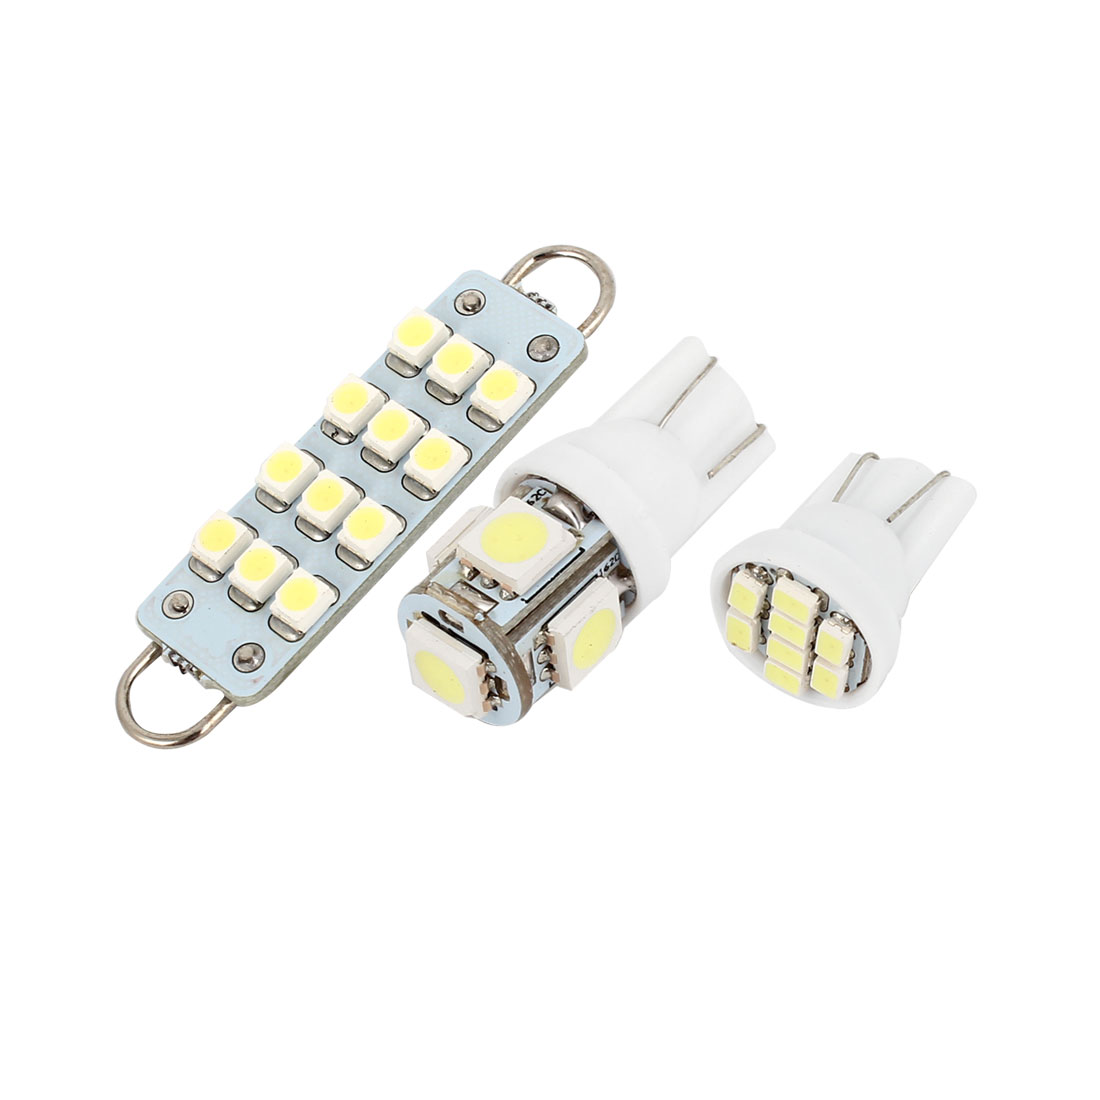 15 Pcs White LED Map Dome Light Bulb Lamp Interior Package Kit For Ford Explorer 2006-2010